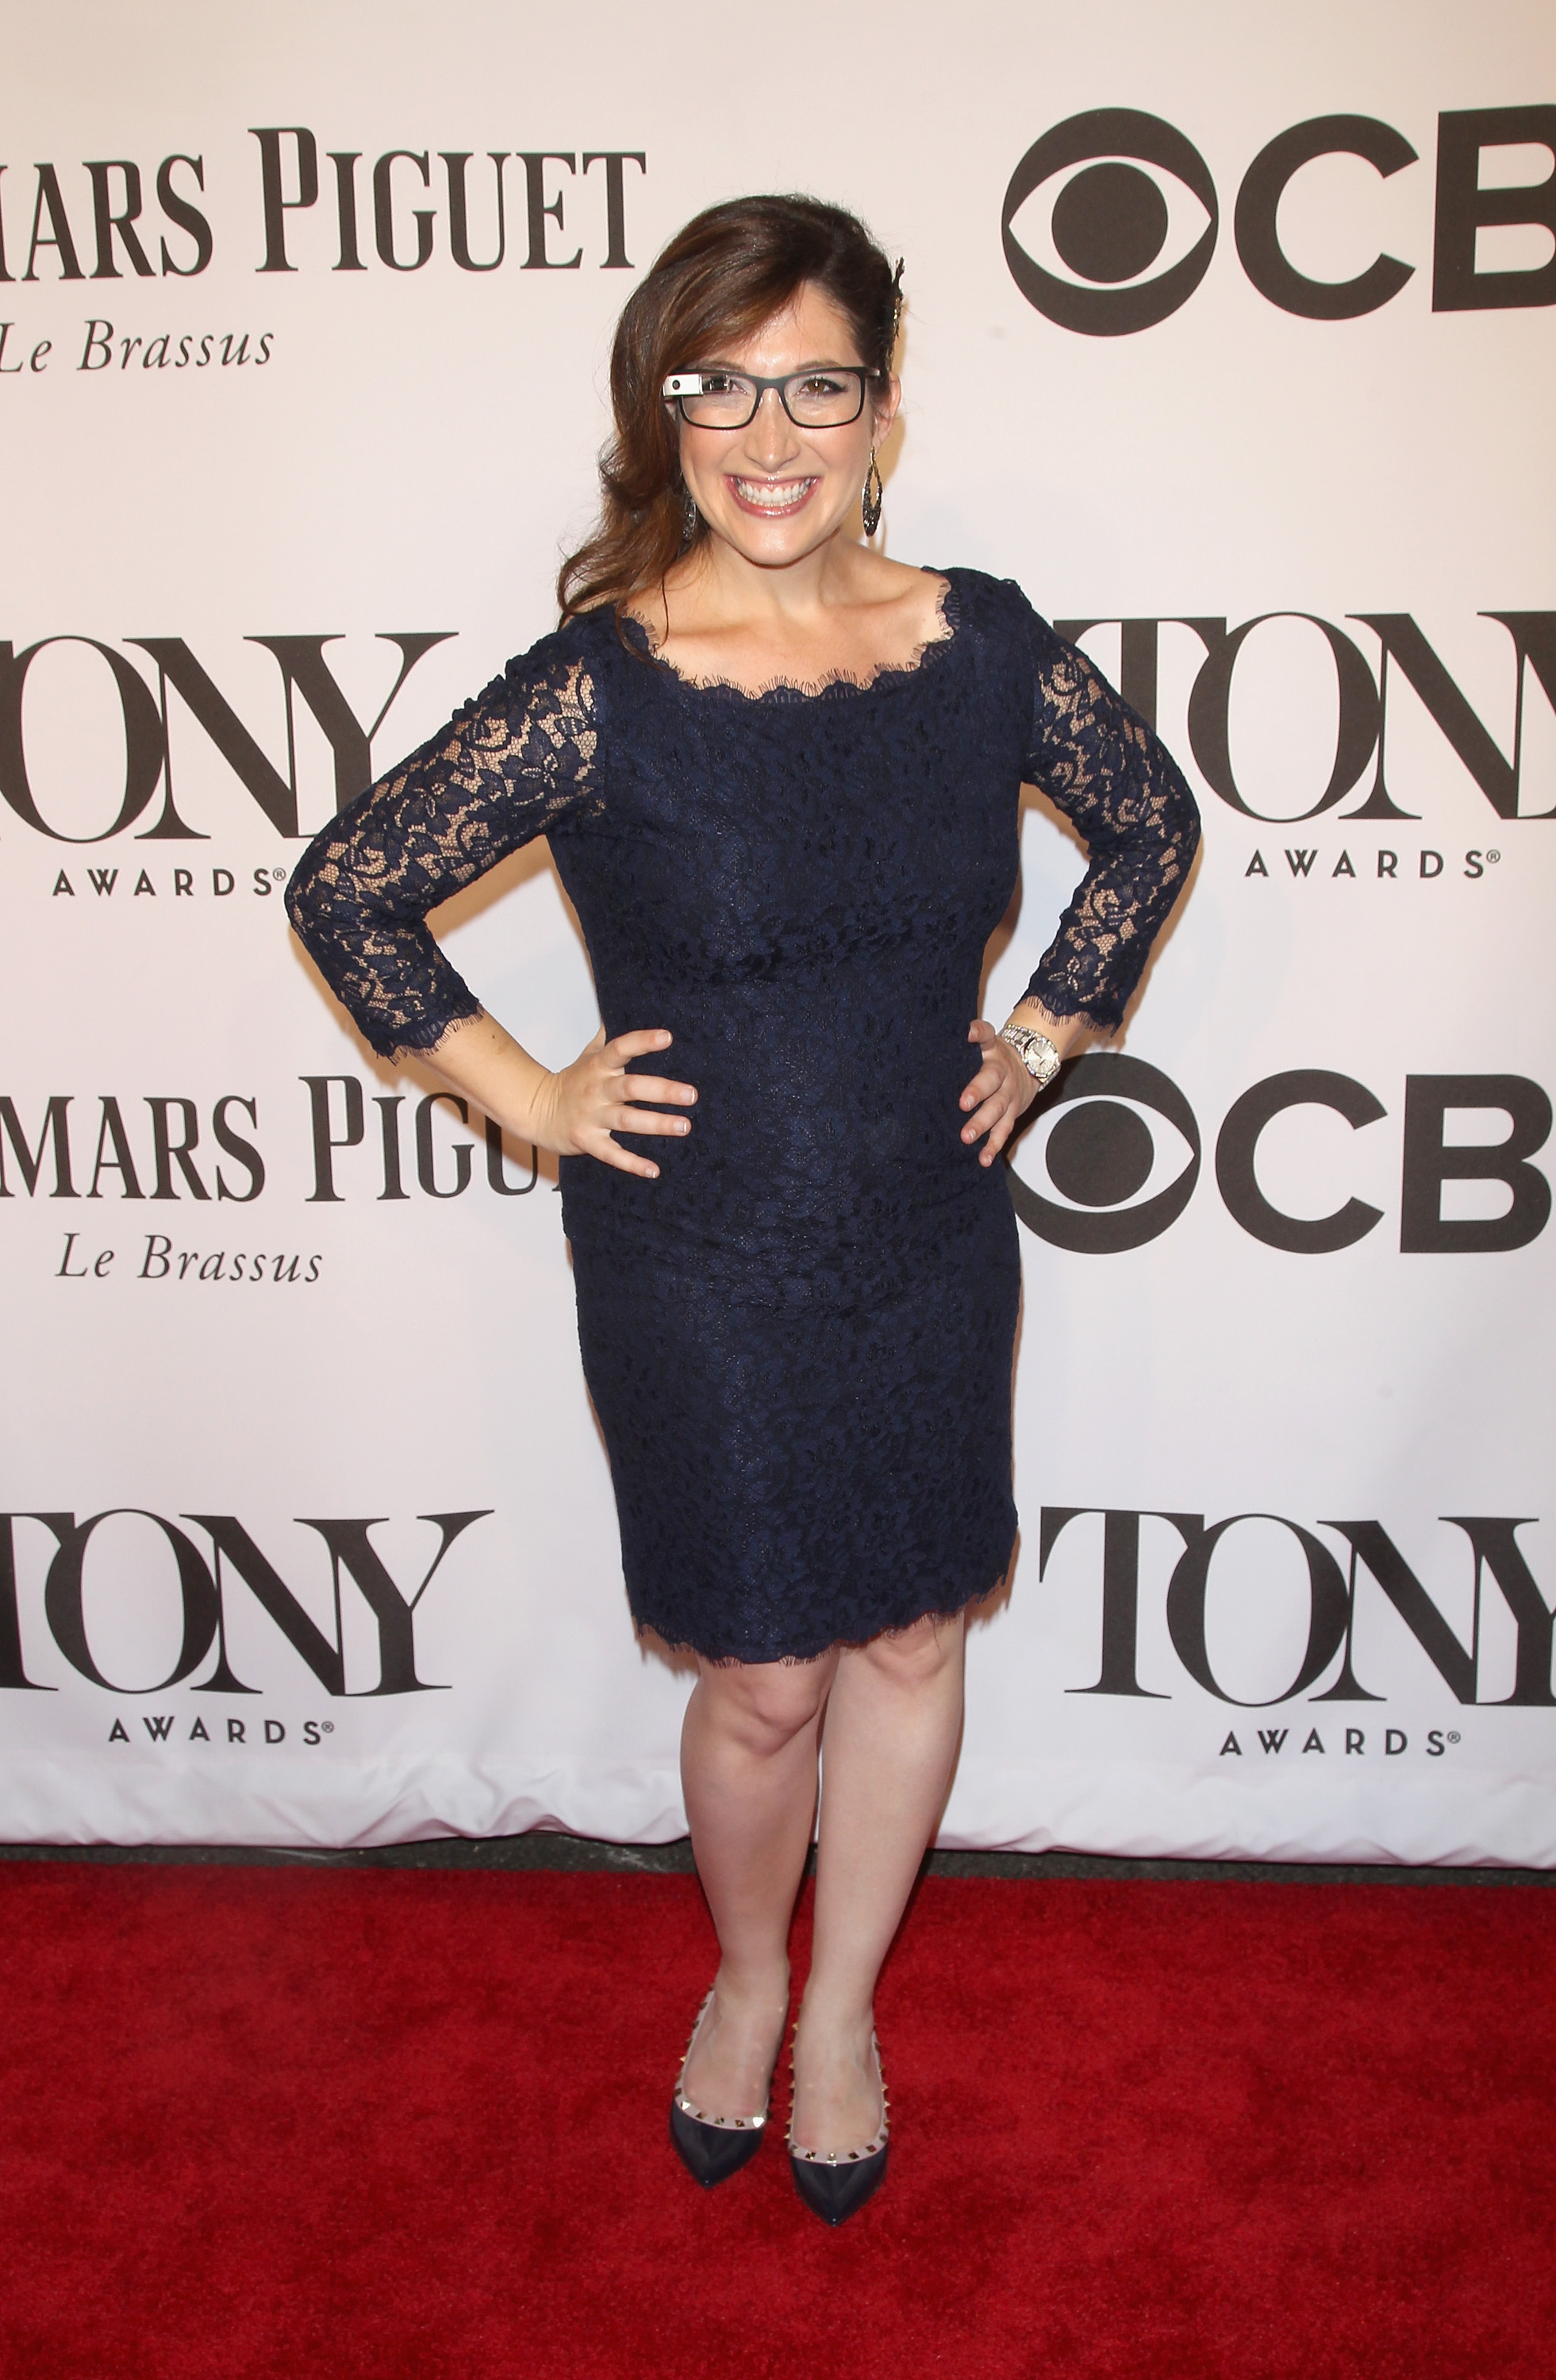 Randi Zuckerberg attends the American Theatre Wing's 68th Annual Tony Awards at Radio City Music Hall on June 8, 2014 in New York City.